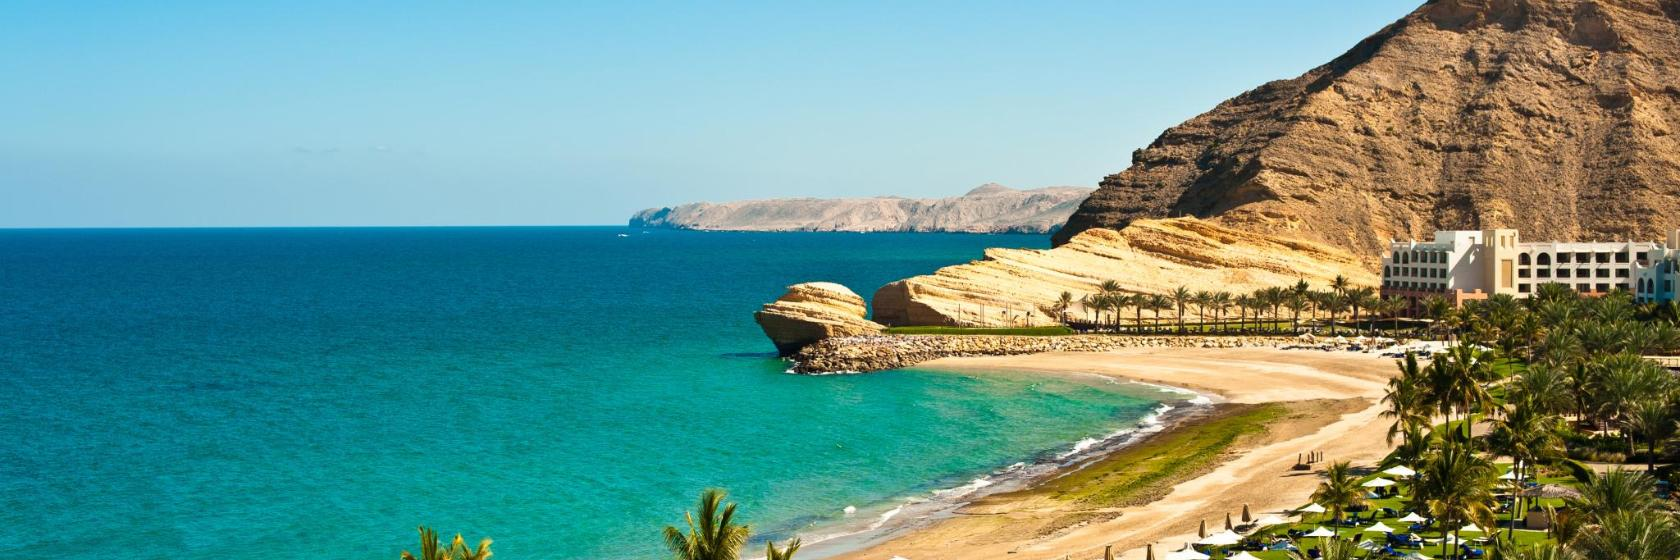 The 10 best Oman hotels - Where to stay in Oman